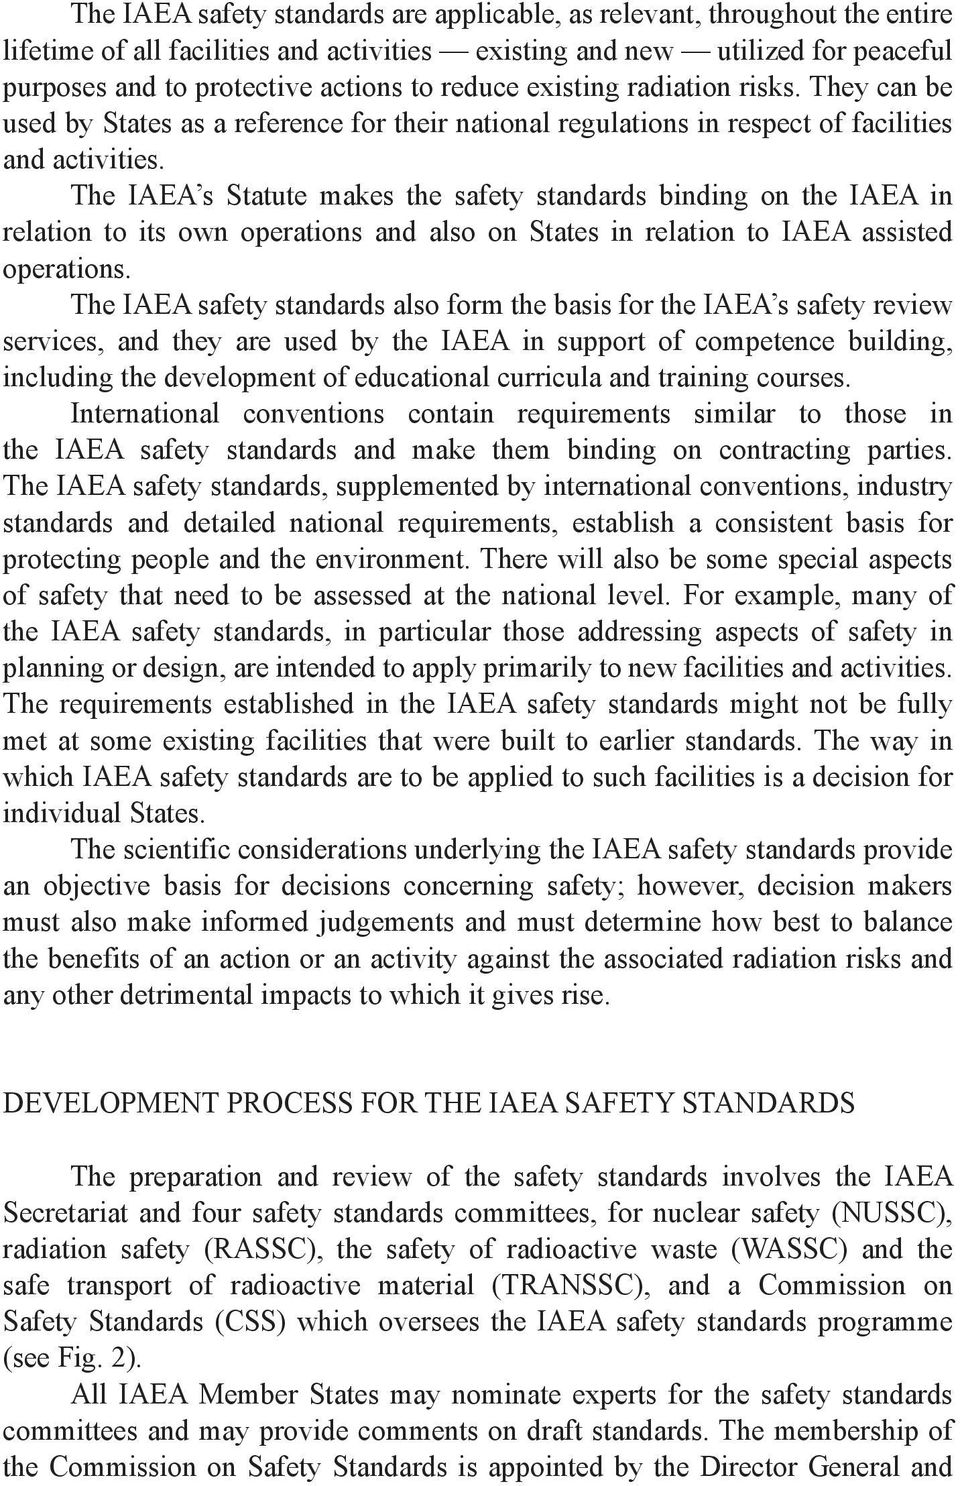 The IAEA s Statute makes the safety standards binding on the IAEA in relation to its own operations and also on States in relation to IAEA assisted operations.